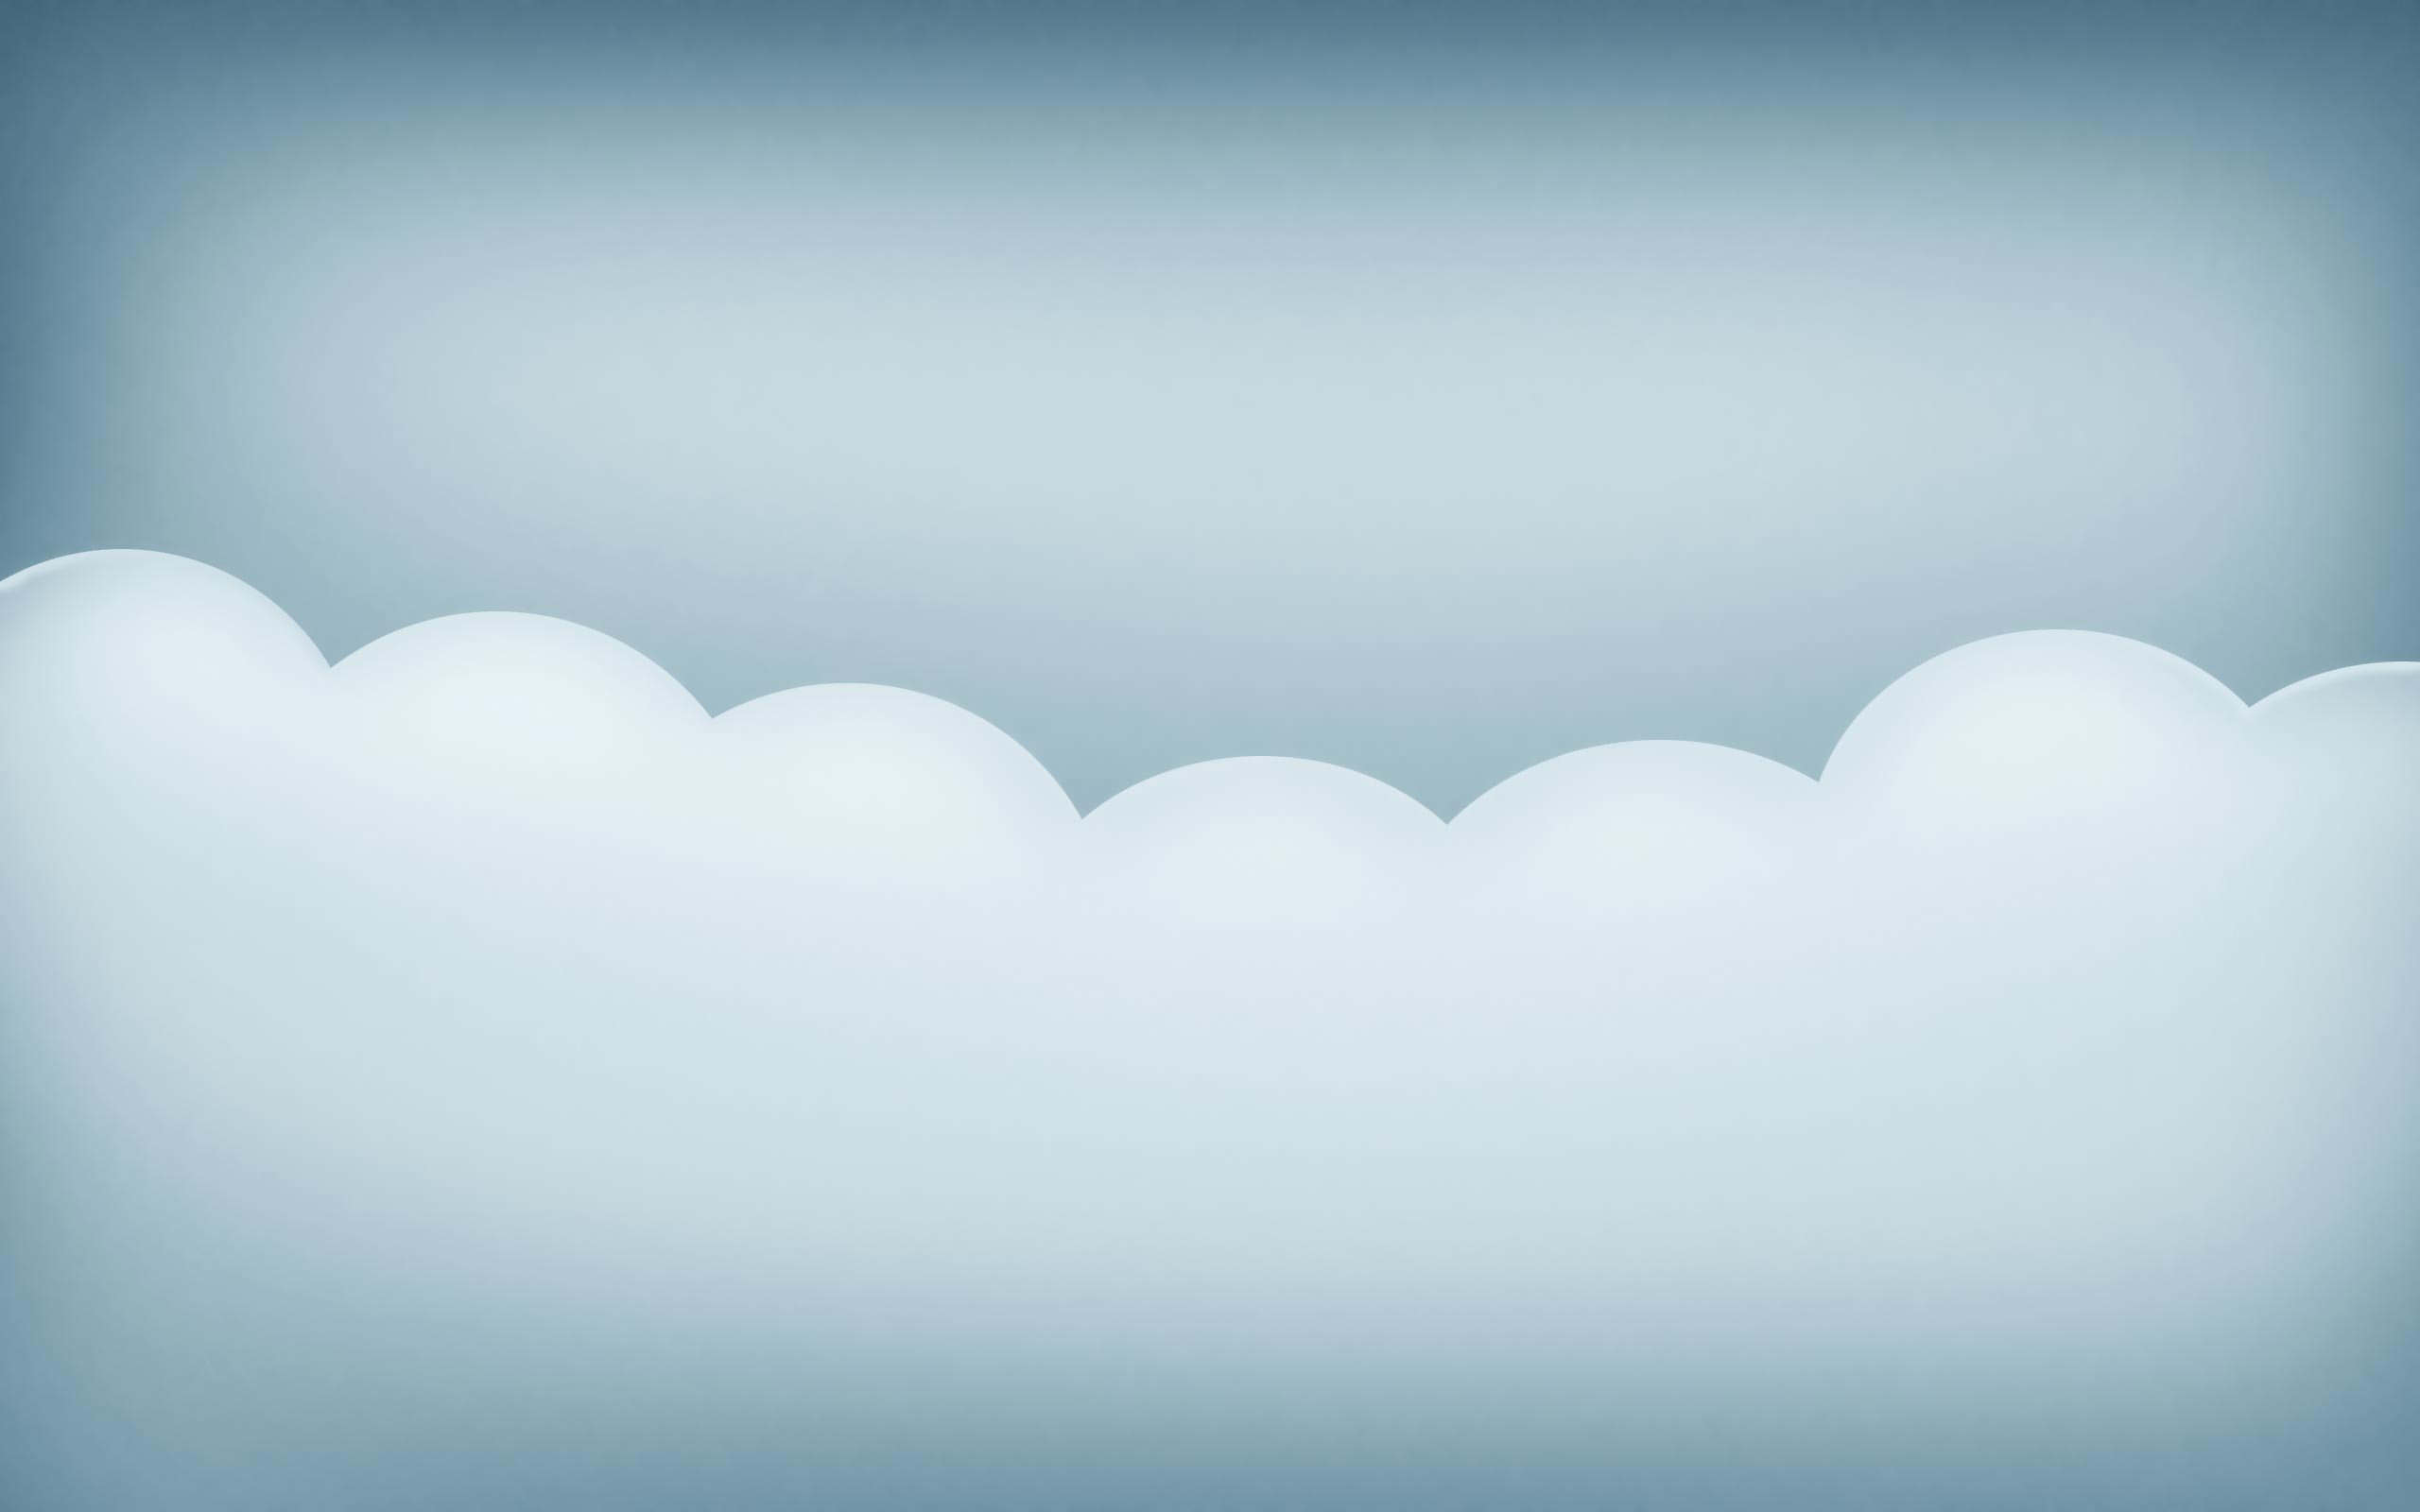 Light Solid Clouds Background